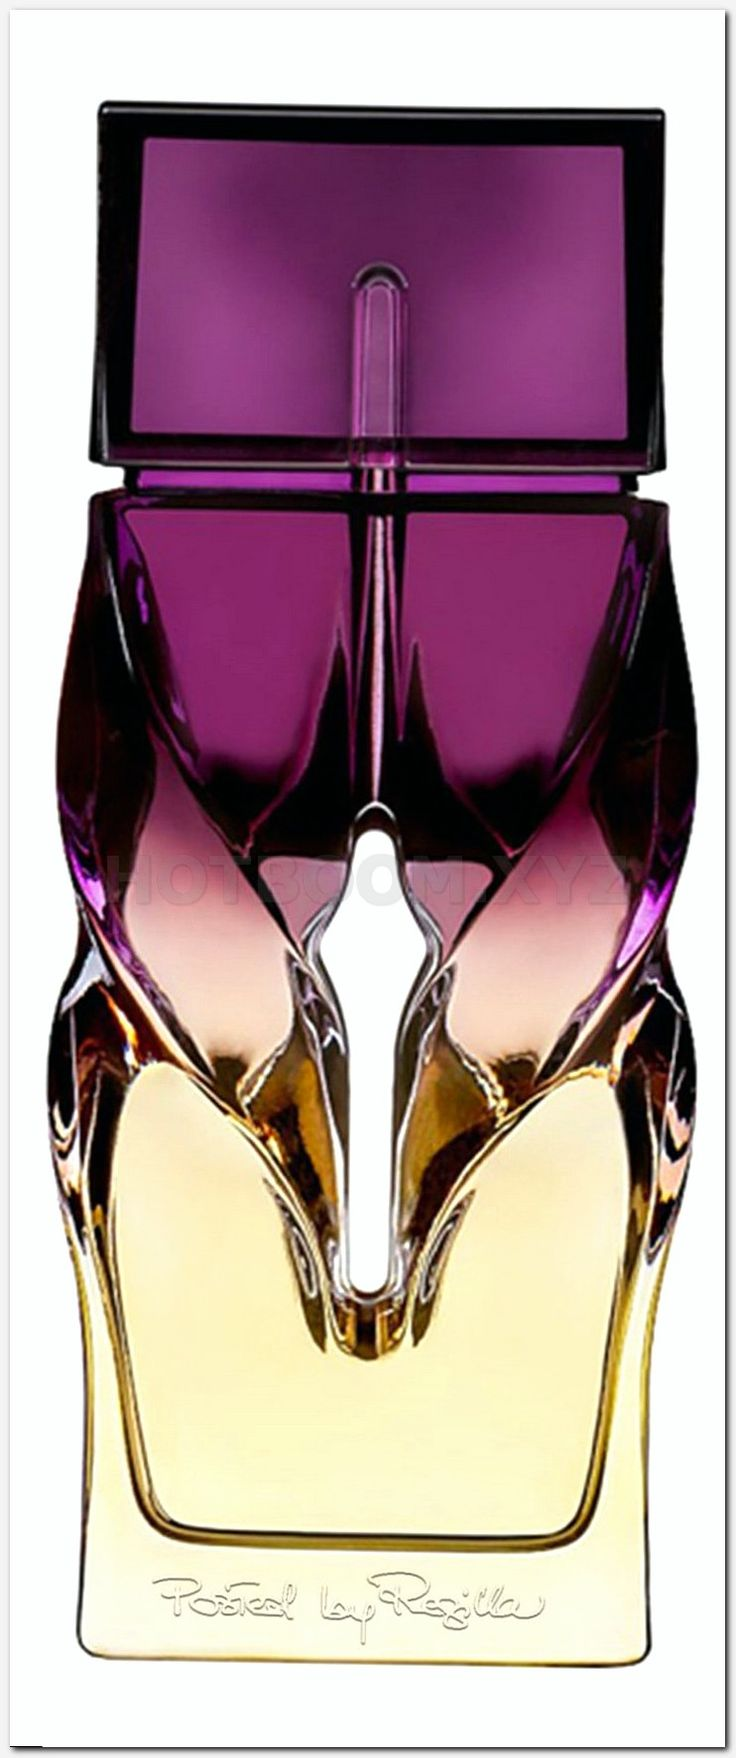 hpsales, rochas quimicas, fragrance finder boots, meaning of toilette, coty usa, scent wiki, granrodeo, perfume jpop members, fm3a, yui pv, my chemist perfumes, aaa, what perfume are you quiz, 3  perfume, tipos de rochas brasileiras, how to find a new perfume